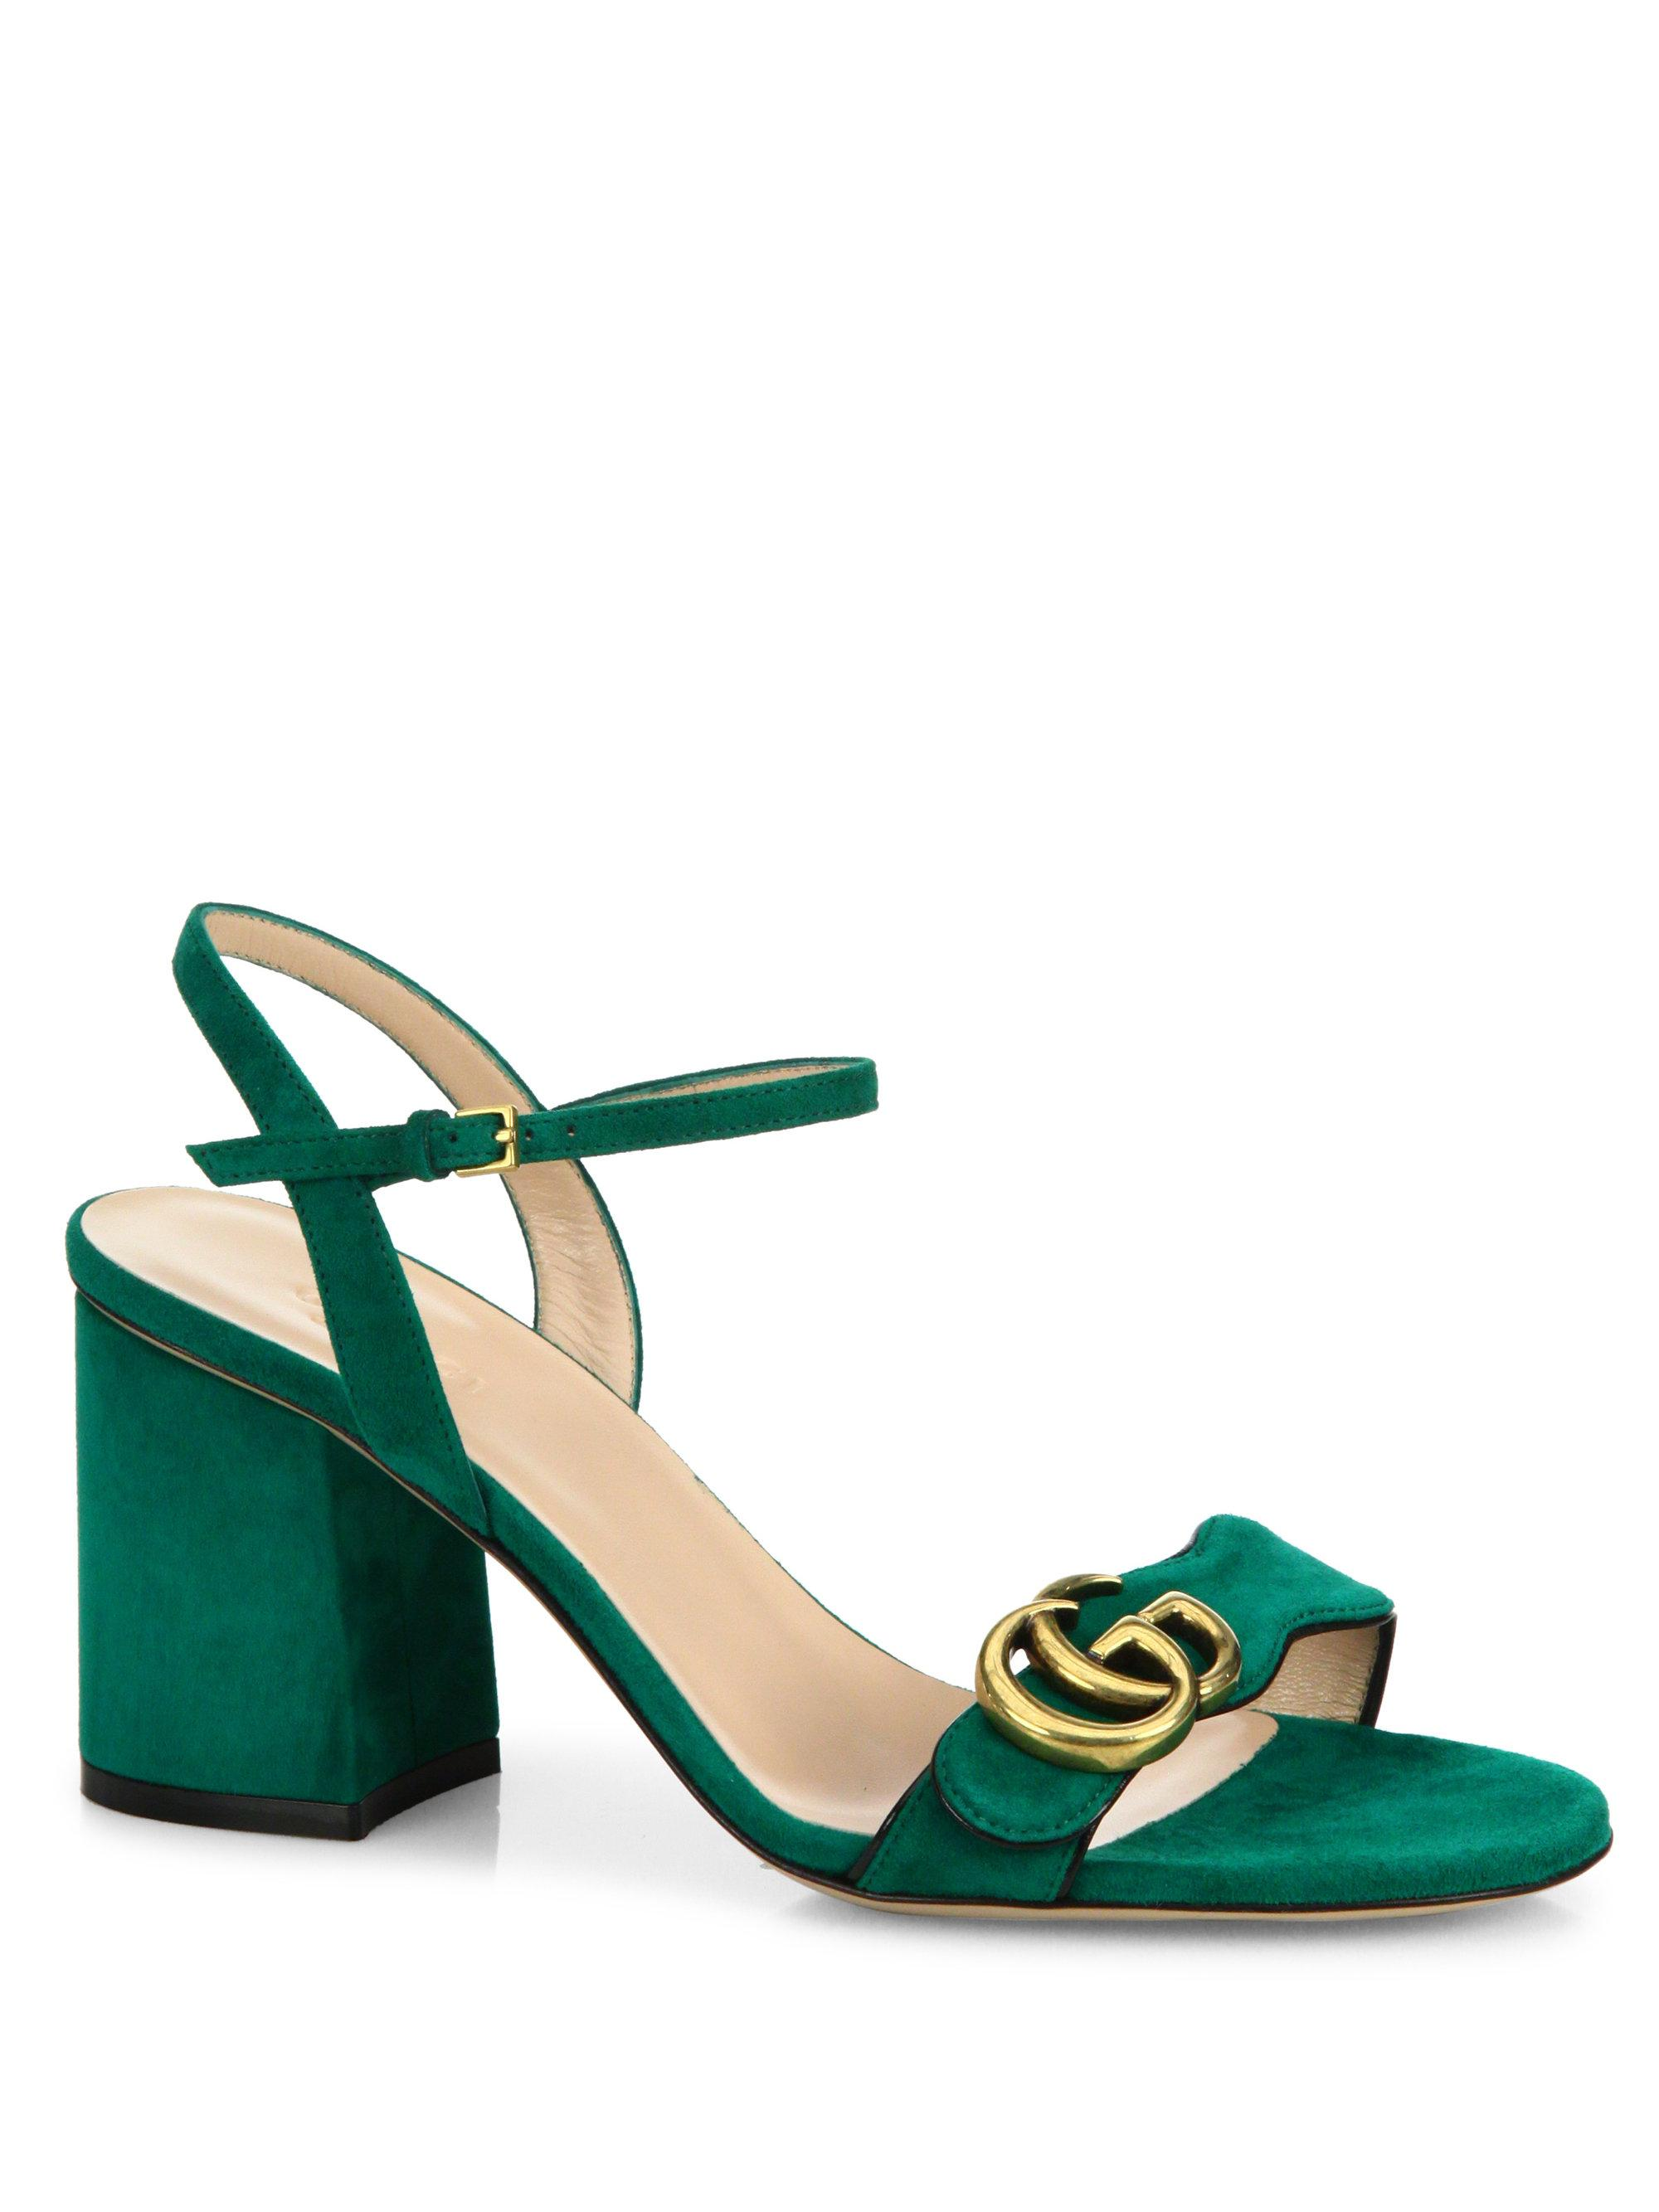 a68f7c61e56e Lyst - Gucci Marmont Suede Block Heel Sandals in Green